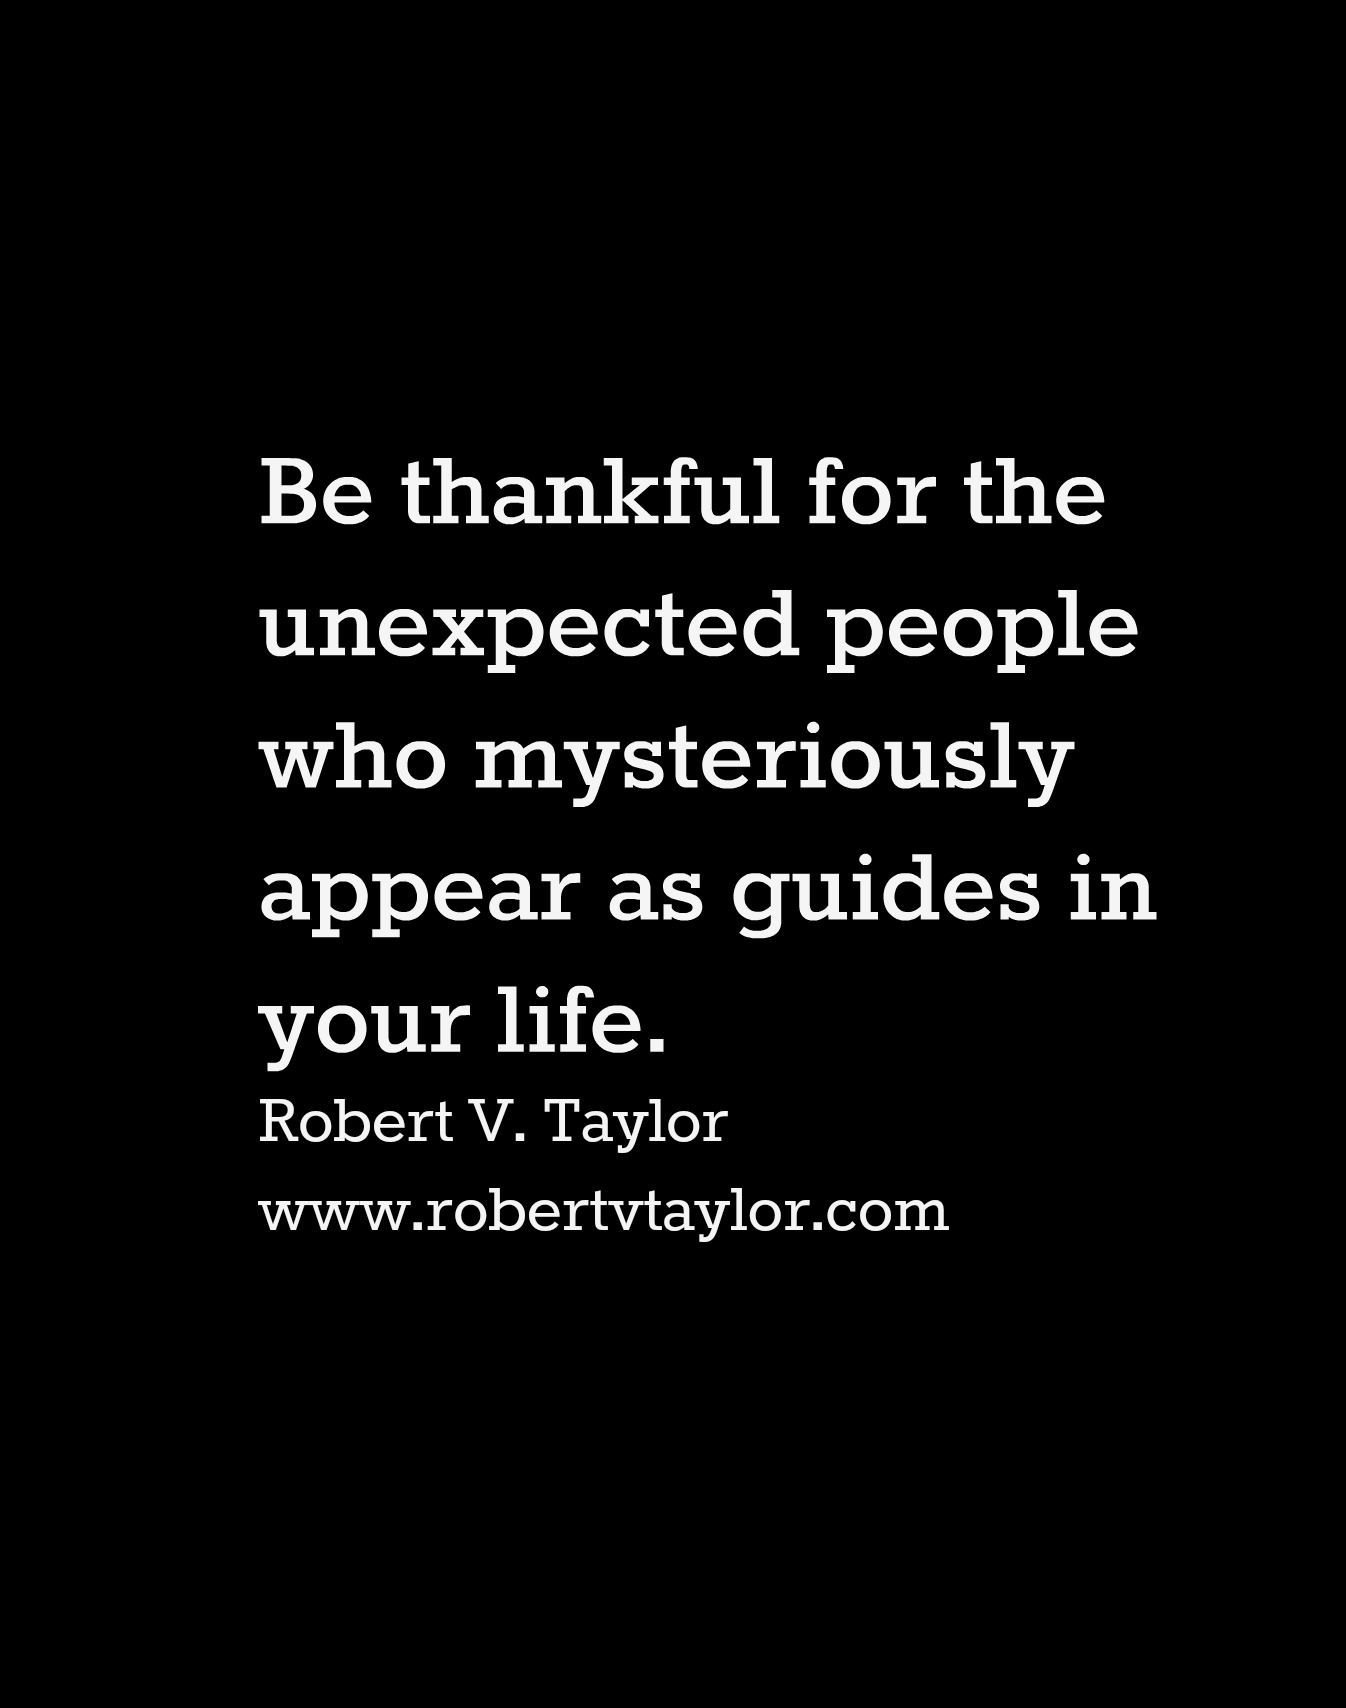 Be thankful for the unexpected people who mysteriously appear as